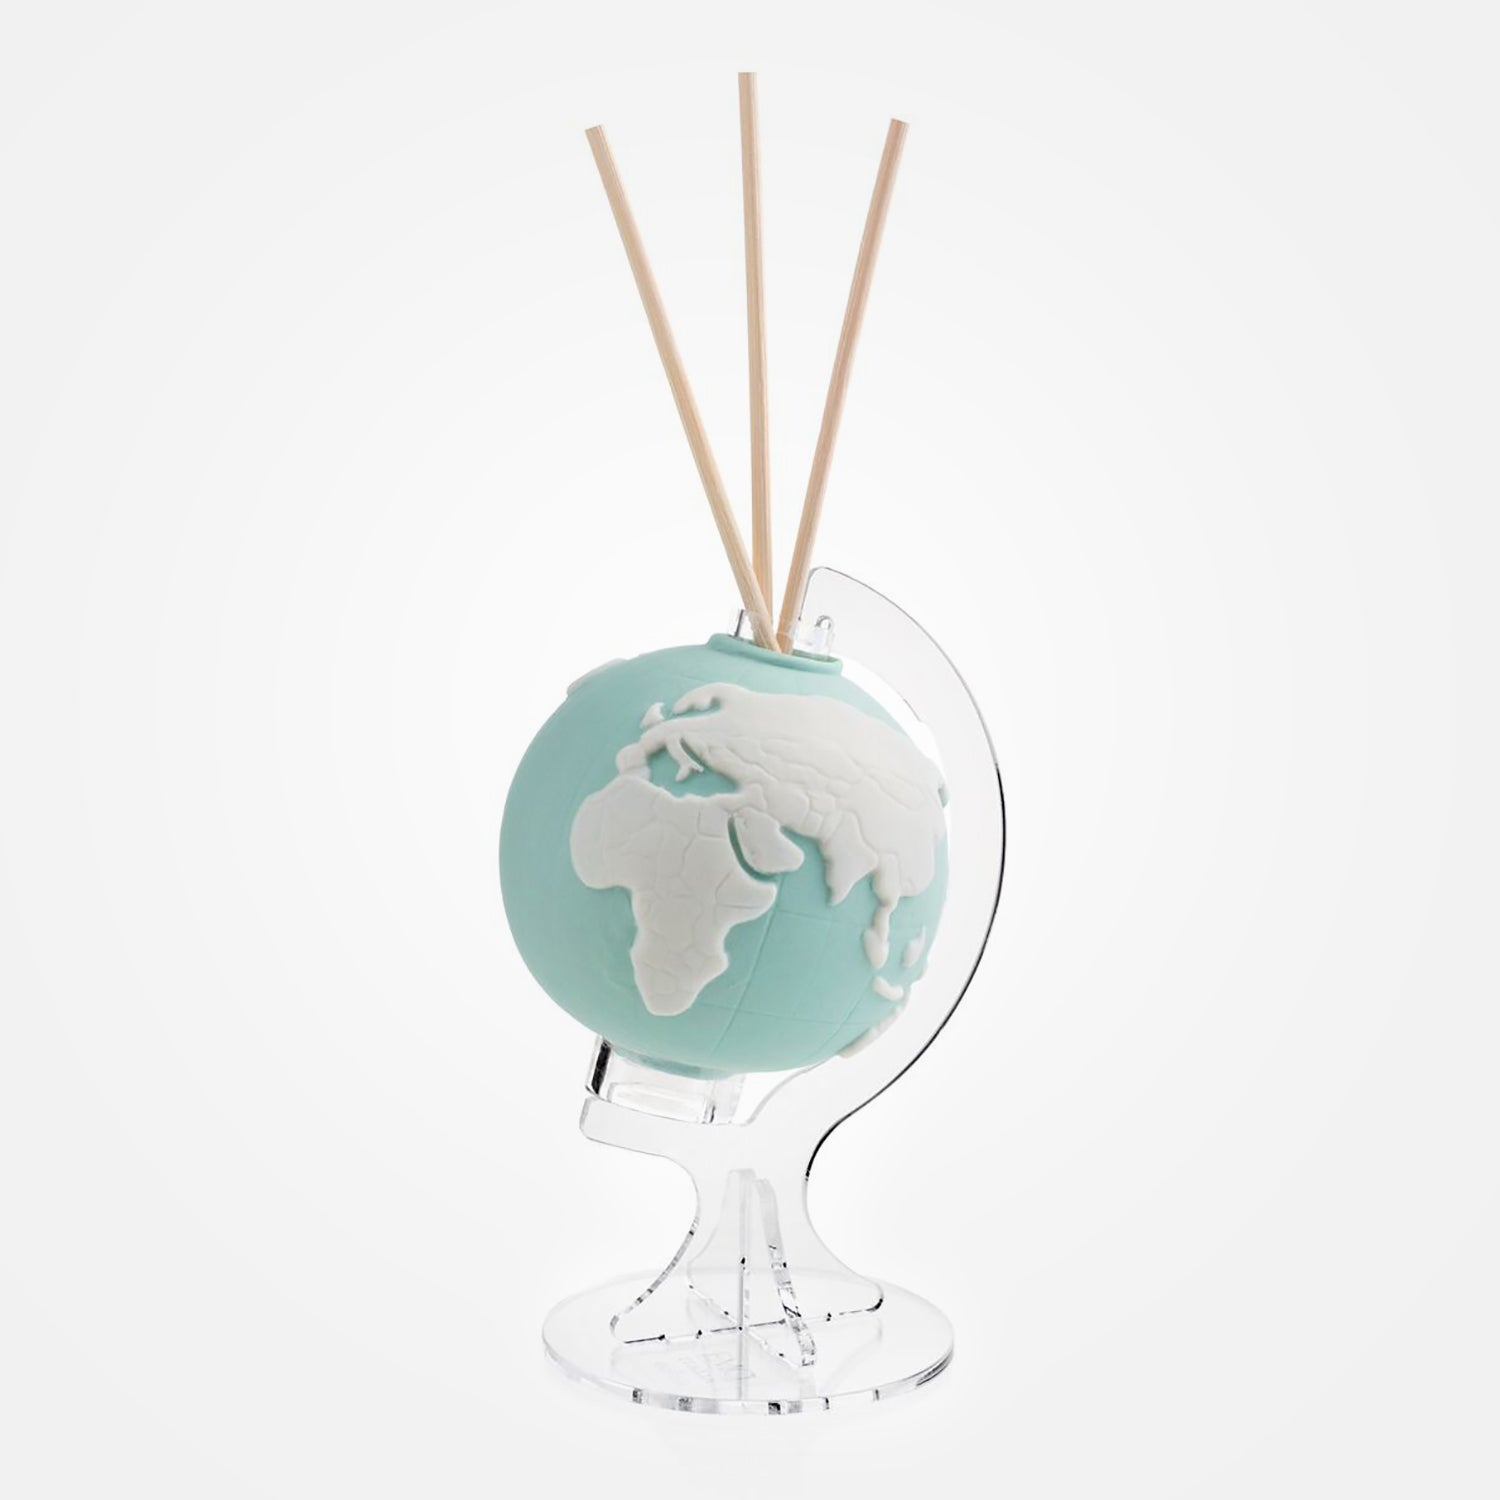 Fragrance Diffuser - Le Globe Continental Collection by Emò Italia